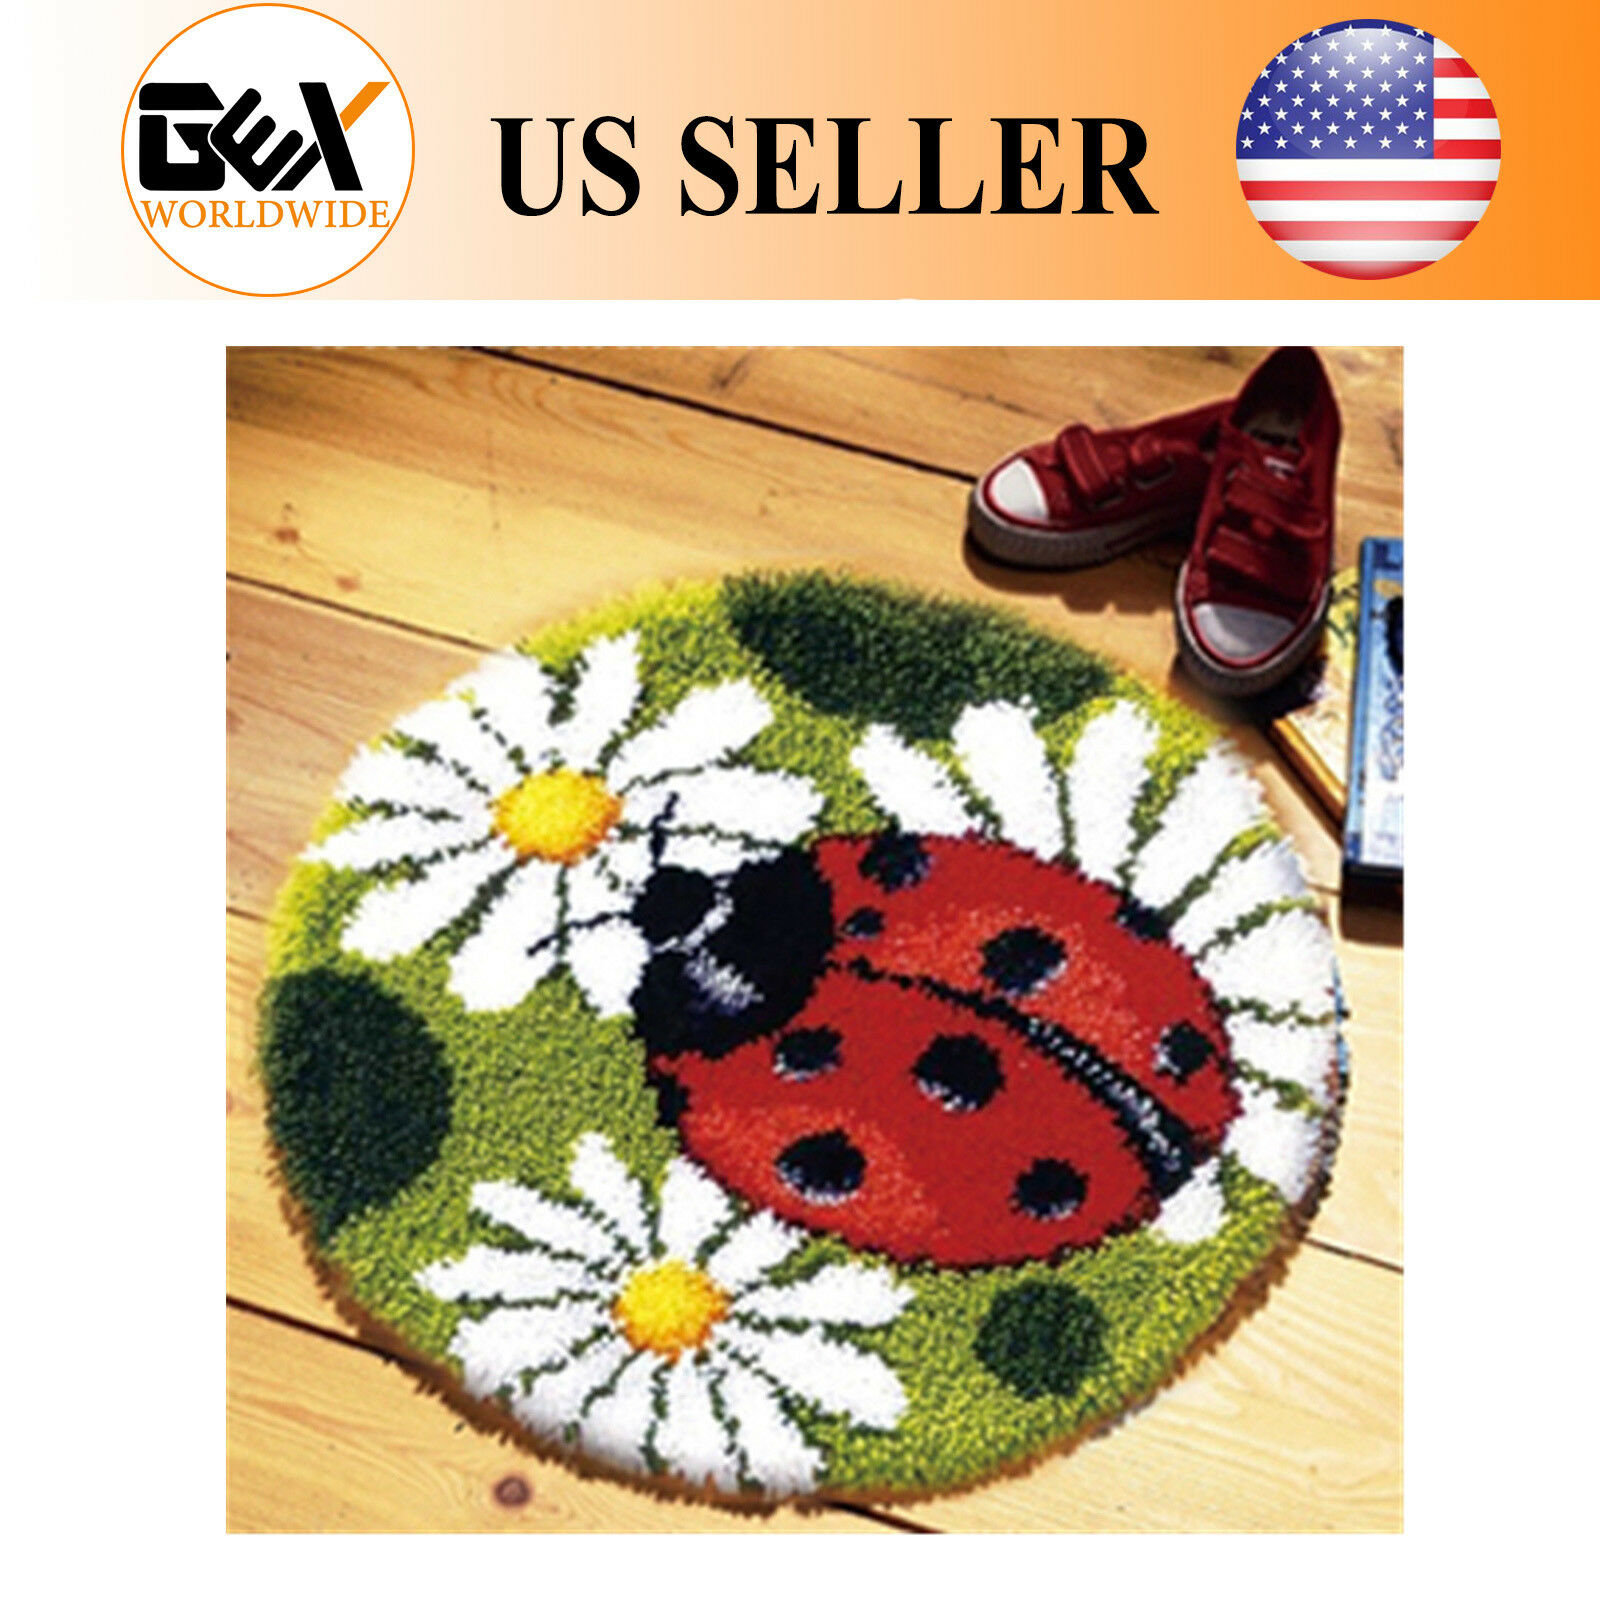 Details About Gex 20 Latch Hook Kit Rug Circular Ladybug Craft Embroidery Christmas Gift